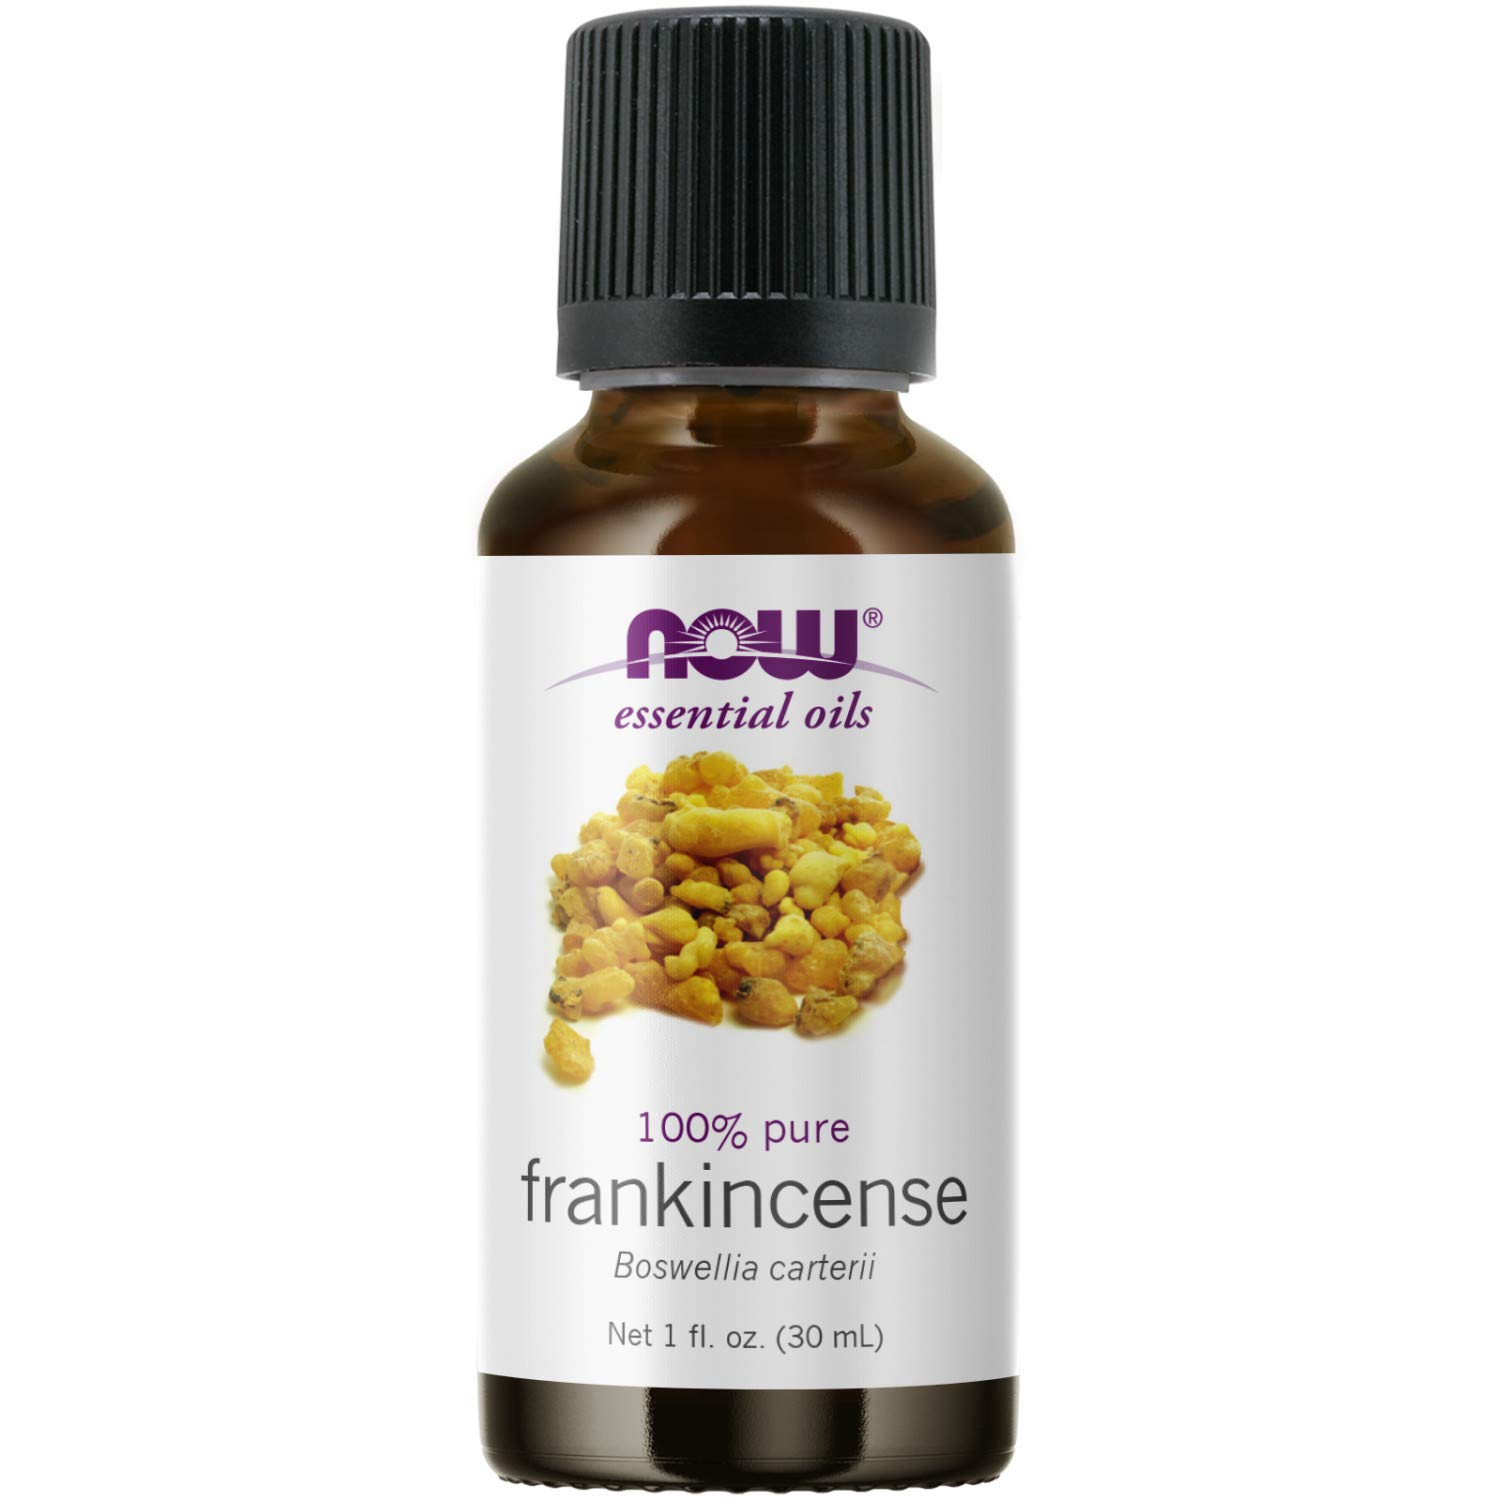 NOW Essential Oils, Frankincense Oil, Centering Aromatherapy Scent, Steam Distilled, 100% Pure, Vegan, Child Resistant Cap, 1-Ounce